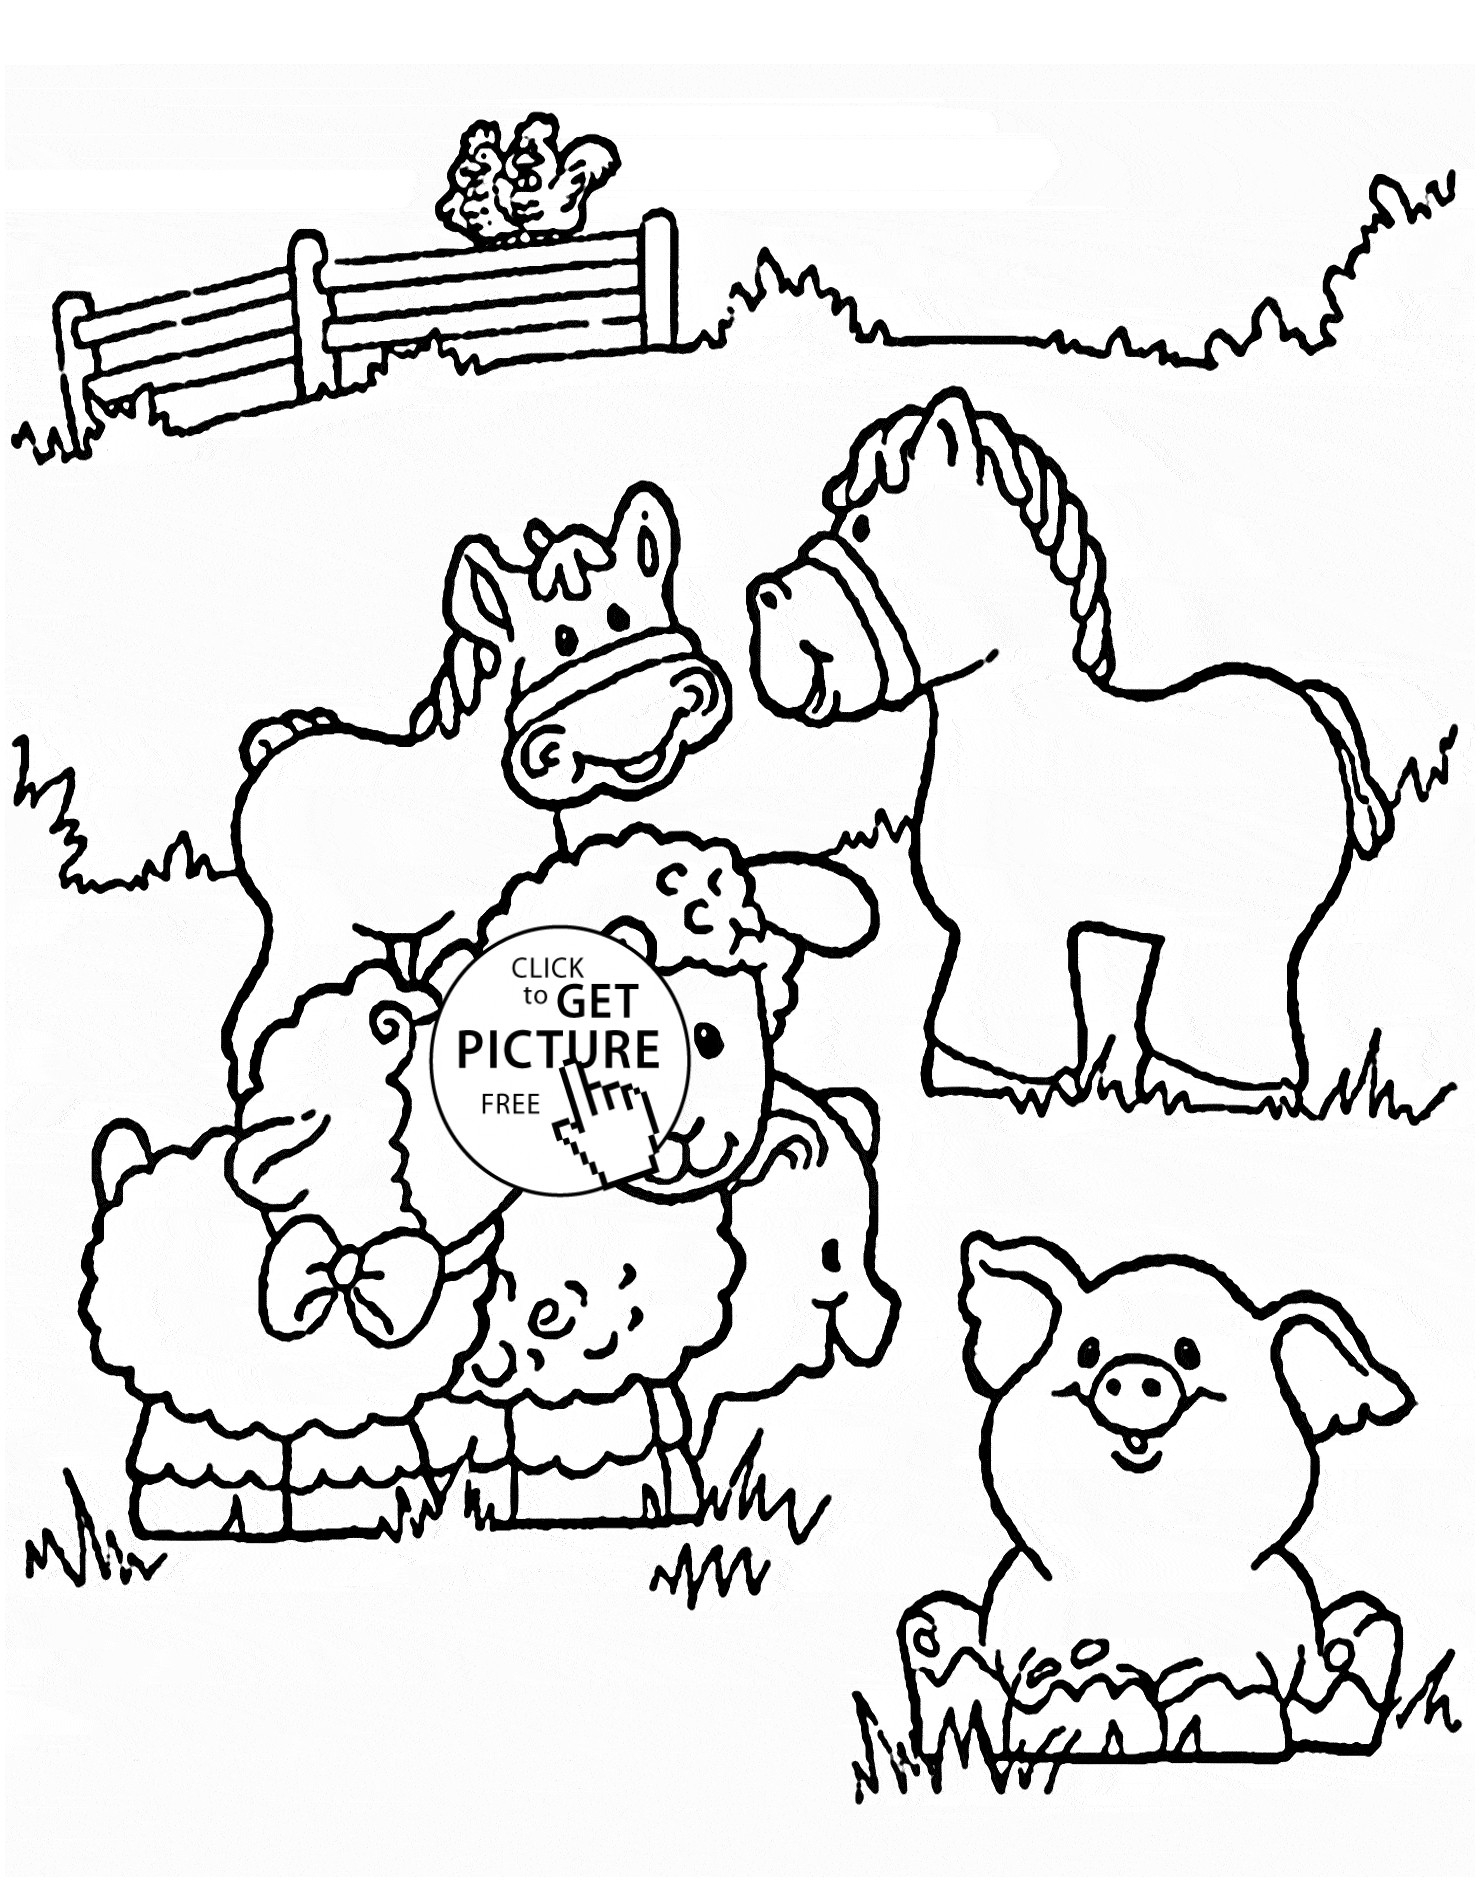 Peace Coloring Pages  Gallery 18t - Save it to your computer